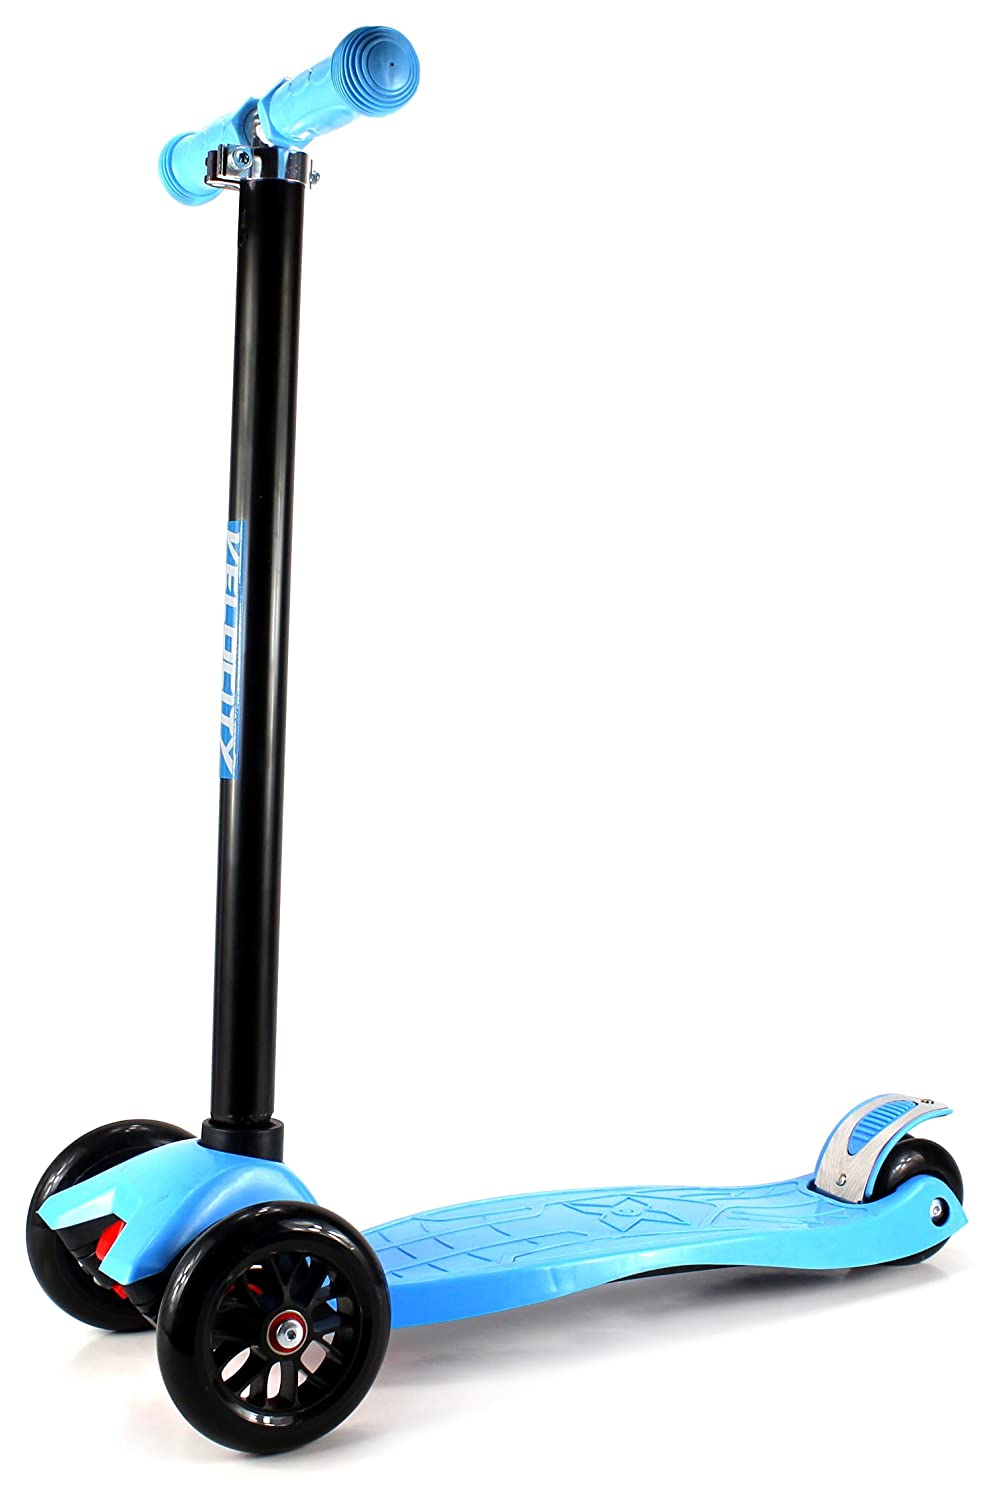 Velocity Scooters '22 Children's Kid's Four Wheeled Toy Kick Scooter w/ Adjustable Handlebars, Rear Fender Brake, Rubber Hand Grips (Blue)